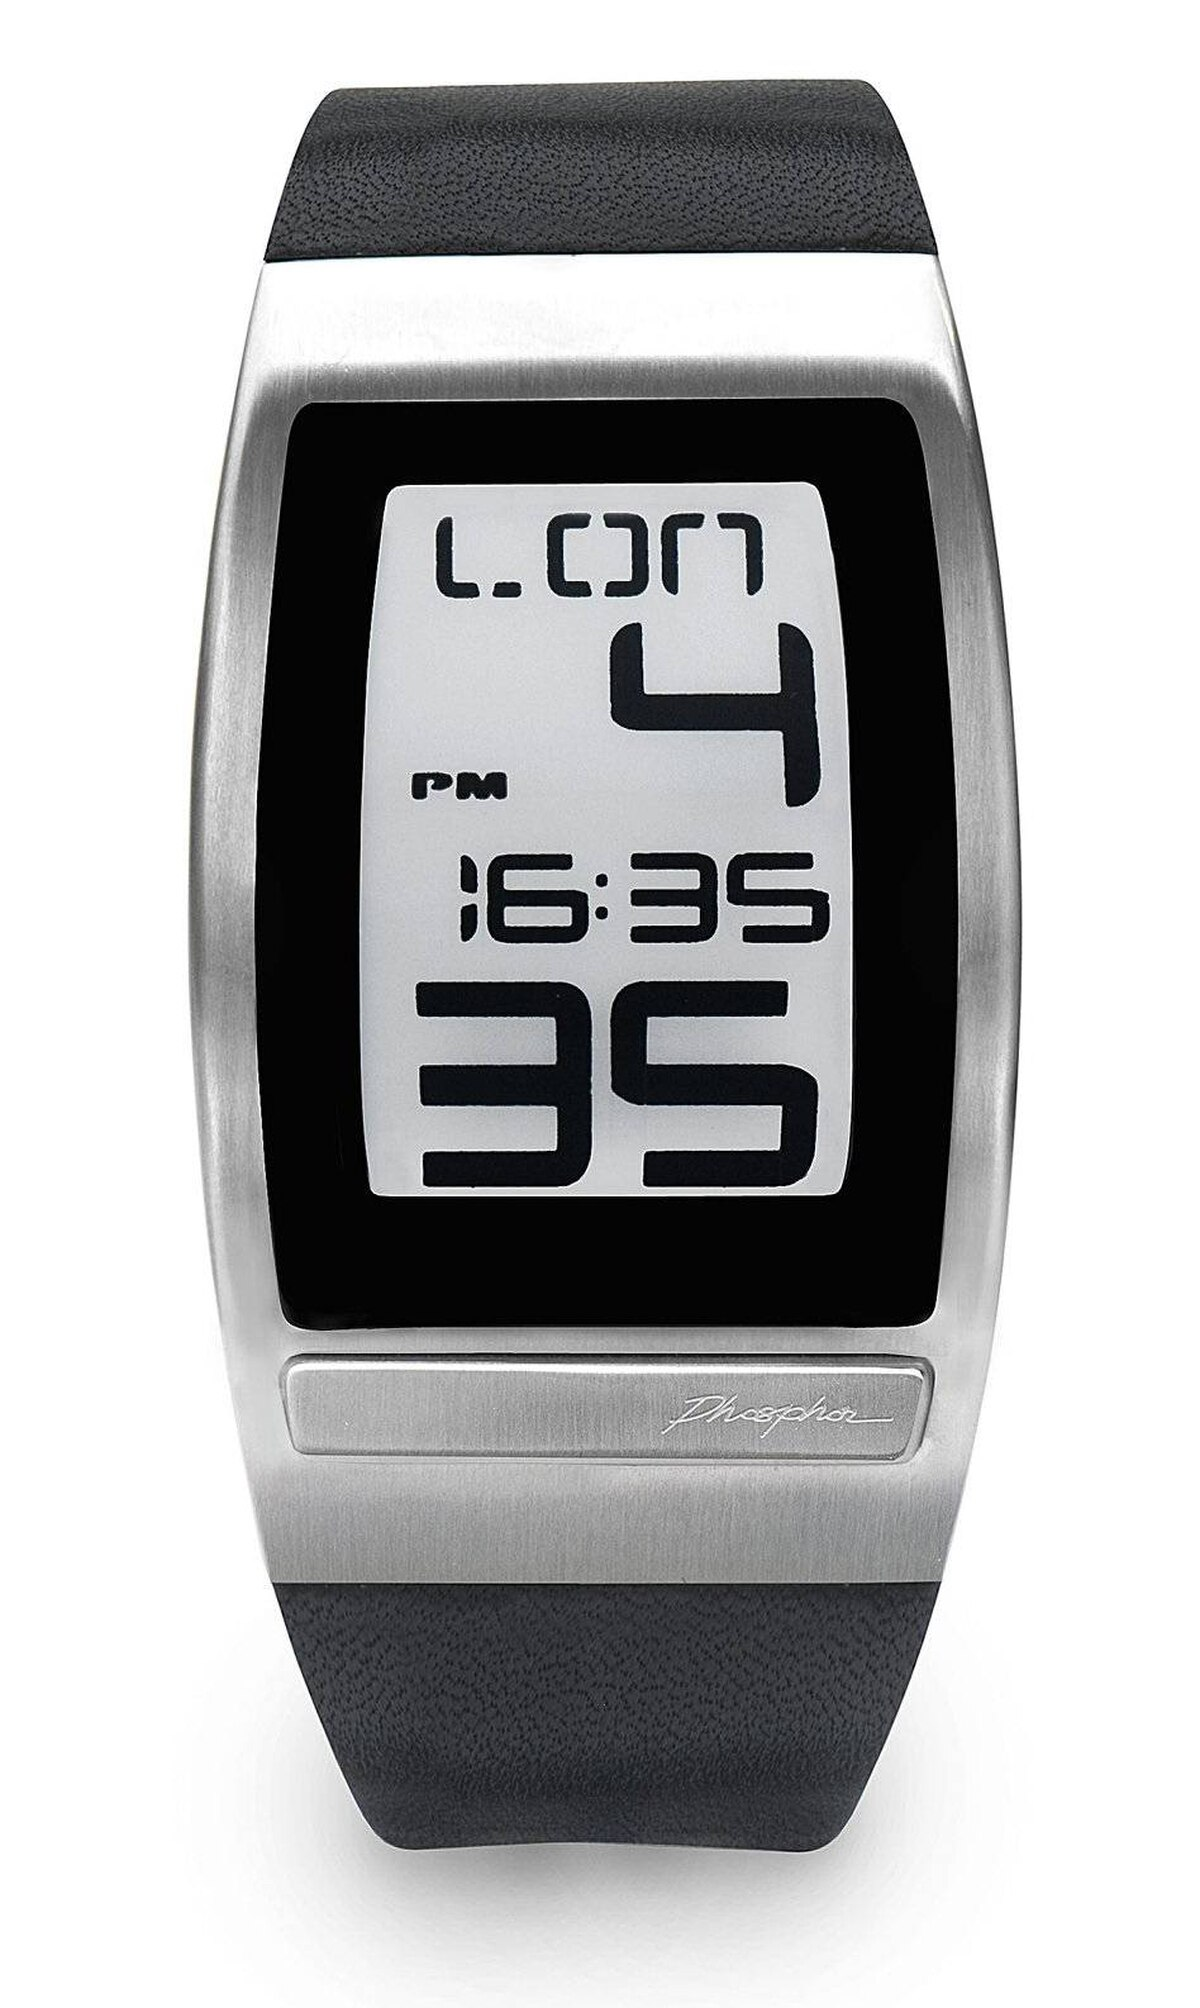 Time zone savvy When you're moving from one time zone to another, it's easy to lose track of time. Need to know when it's too late to call home? Or when your co-workers are at the office to take your call? With dual time-zone displays, the digital Phosphor World Time Curved E Ink watch will help you stay on time in 24 time zones. Display both at once, or just one (in oversize or small type), use backlighting or go dark, or set it to display both time and calendar. Too bad it comes in a man's size only. $175; watchit.ca.